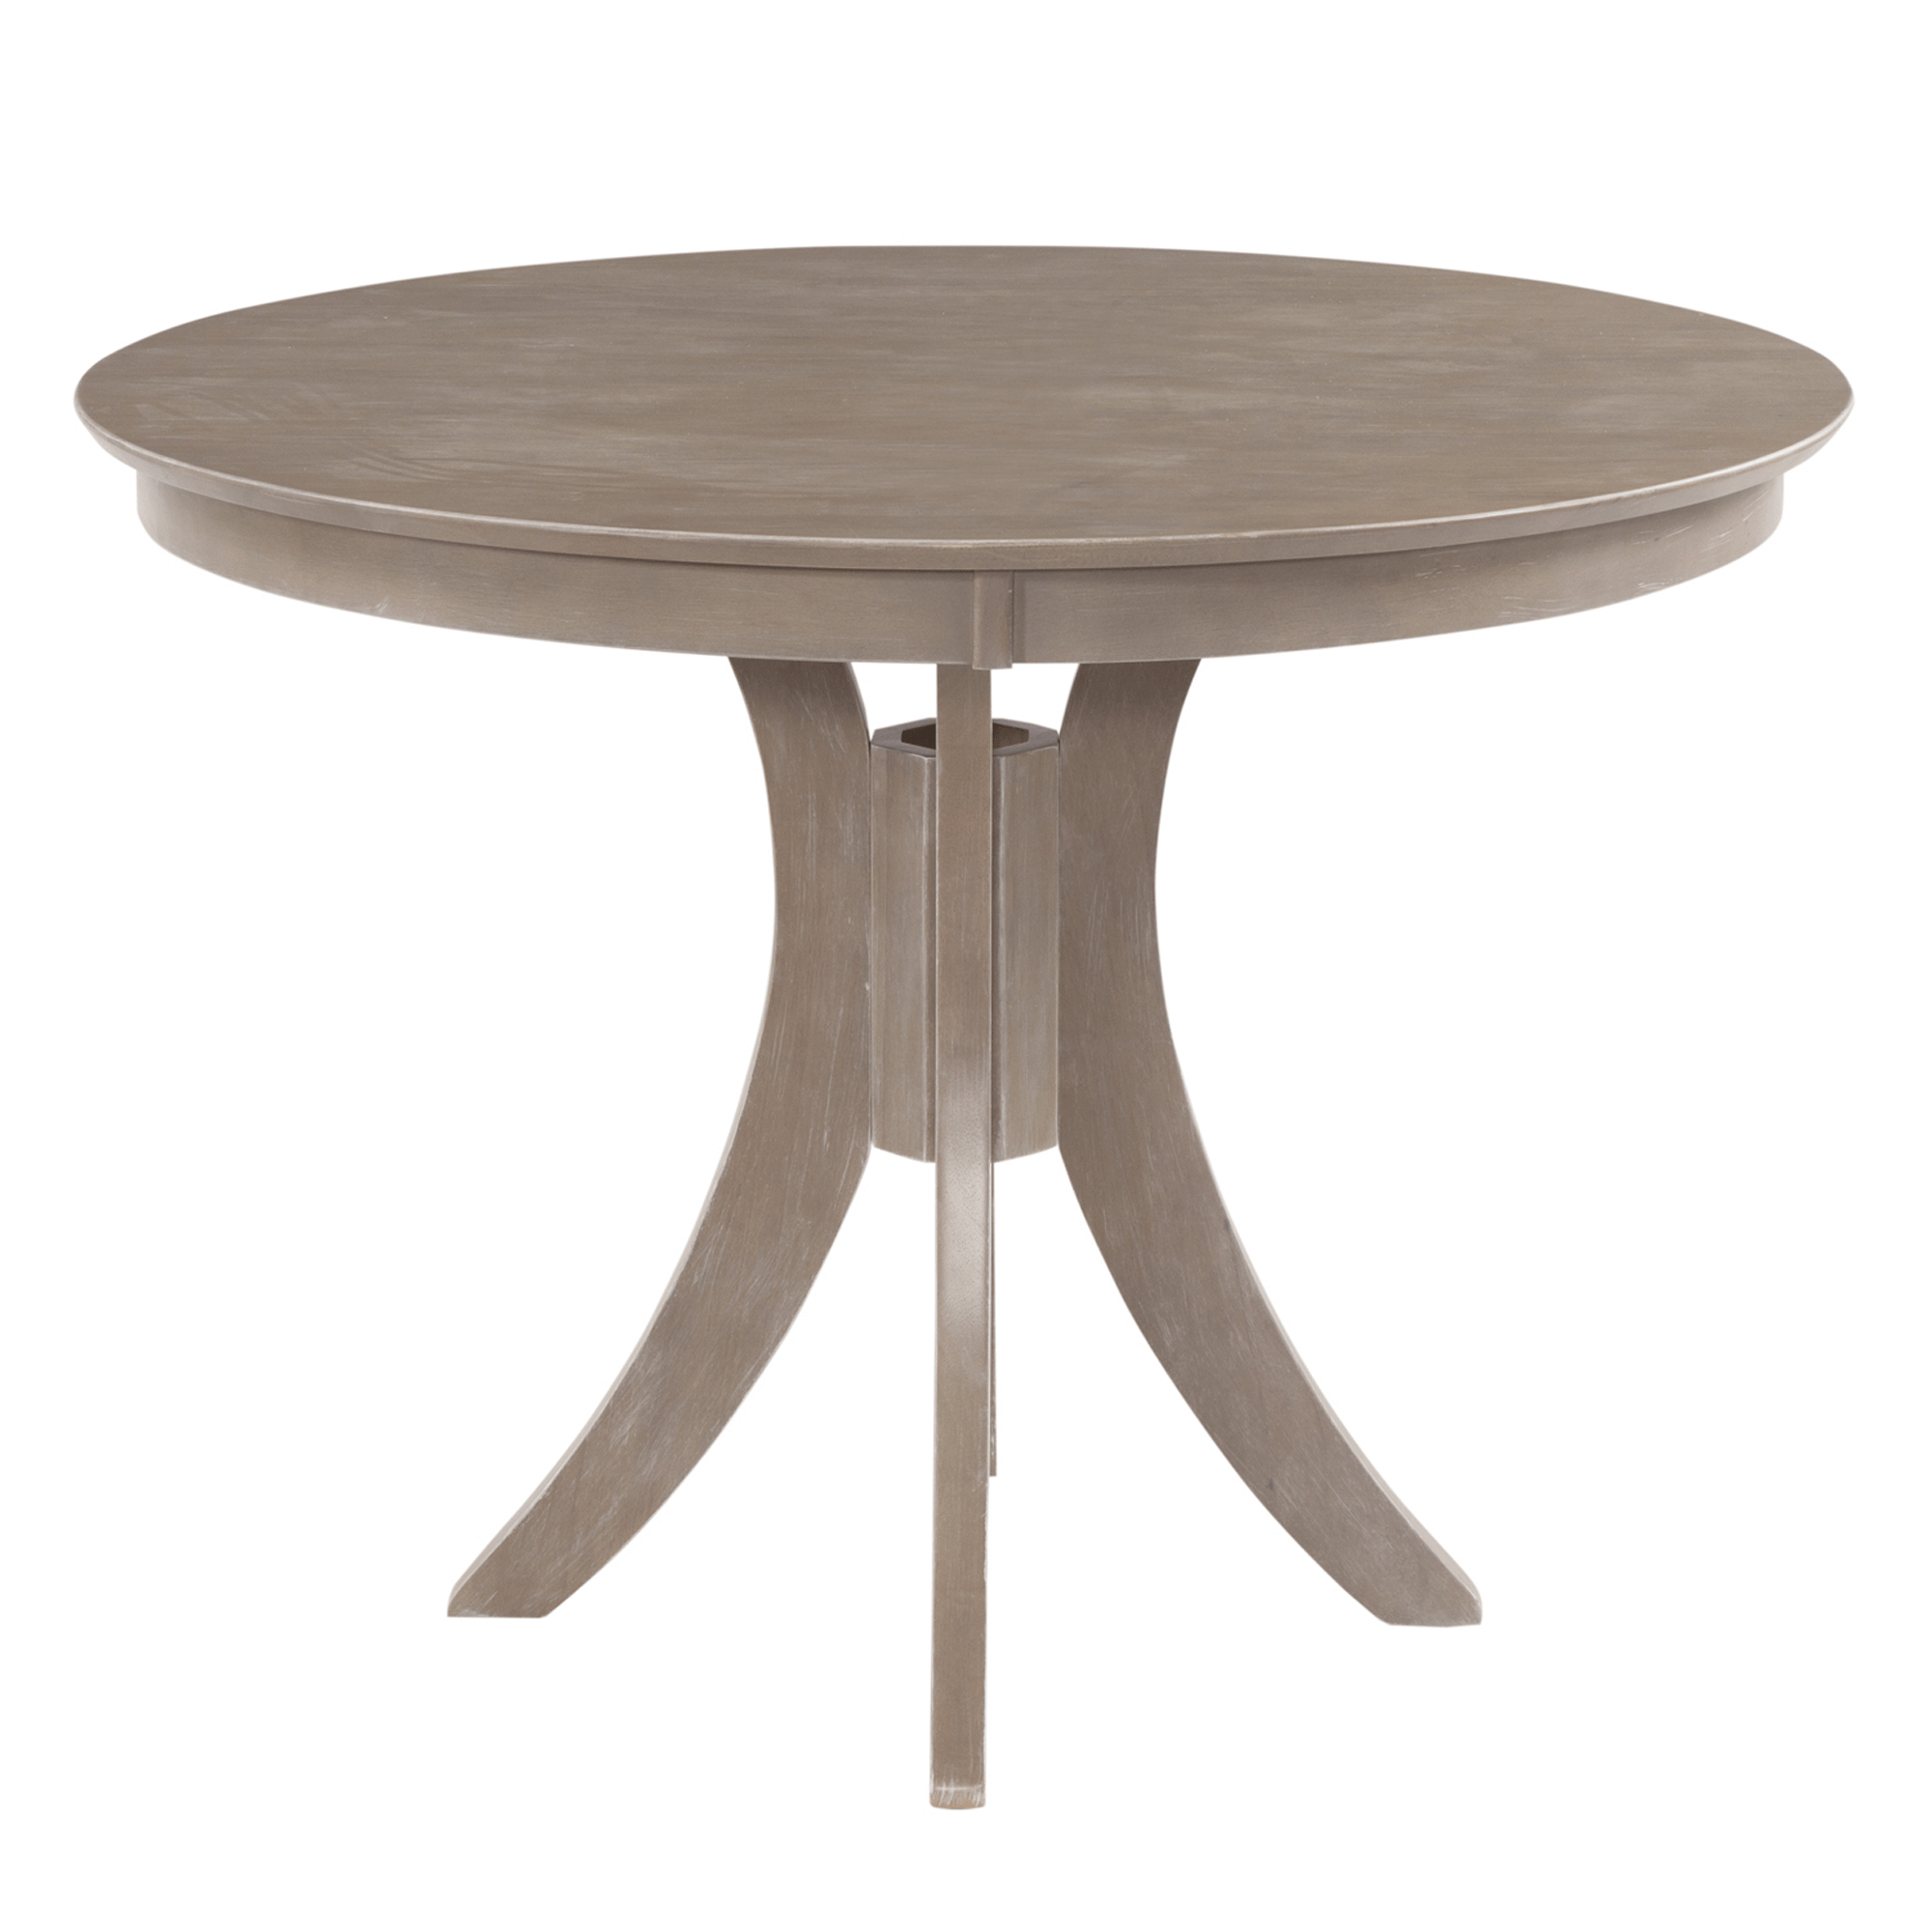 Cosmopolitan Weathered Grey Dining Room Pedestal Table 48 Intended For 2018 Montauk 36'' Dining Tables (View 4 of 15)